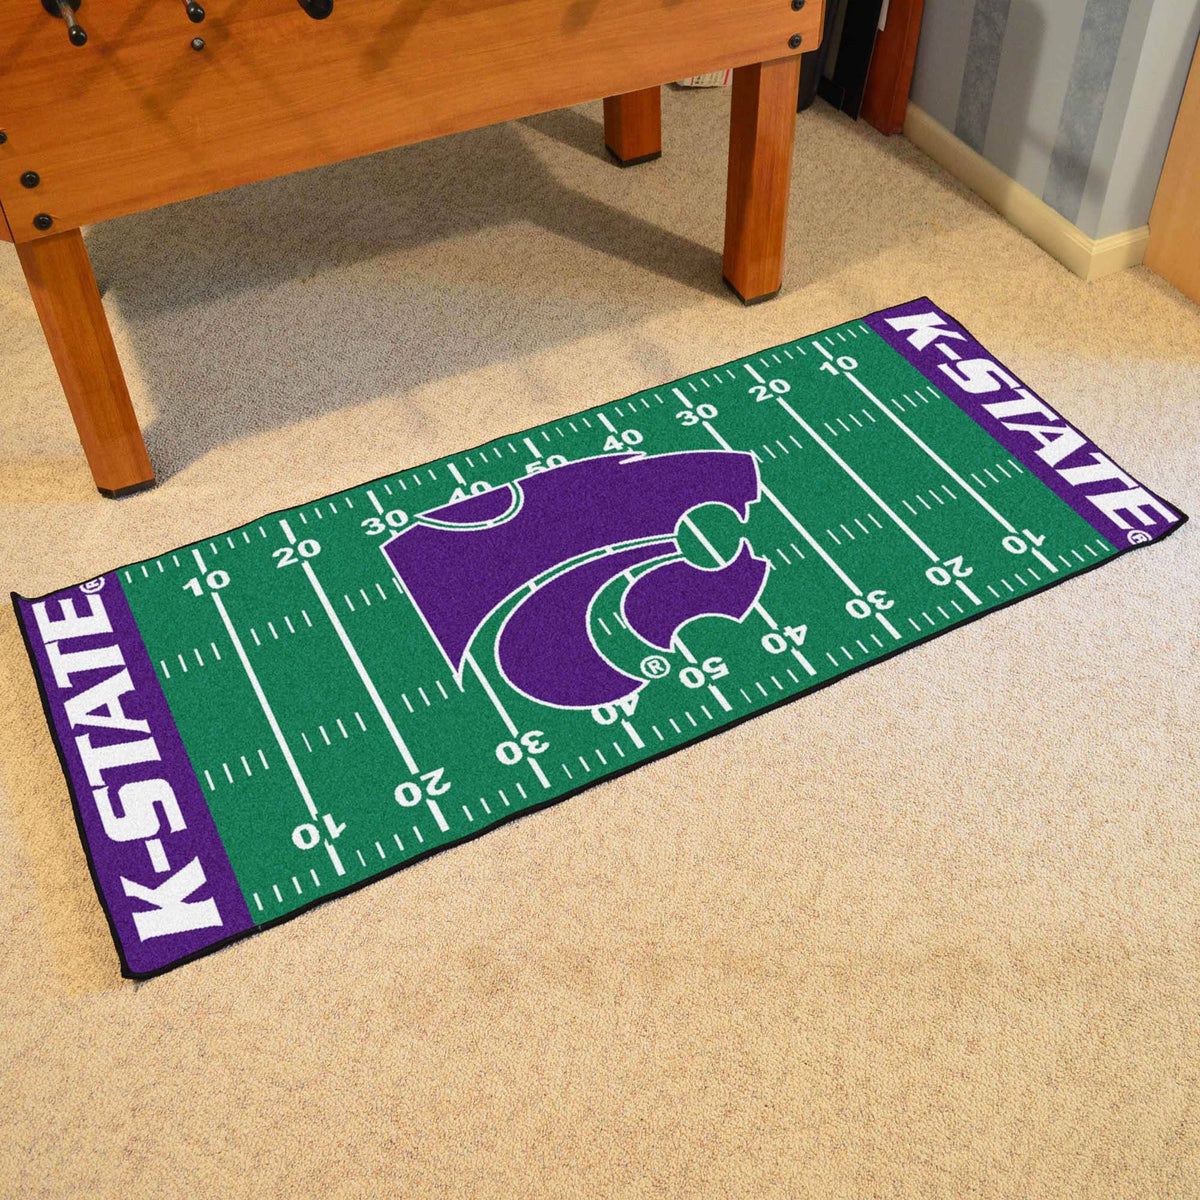 Collegiate - Football Field Runner Collegiate Mats, Rectangular Mats, Football Field Runner, Collegiate, Home Fan Mats Kansas State